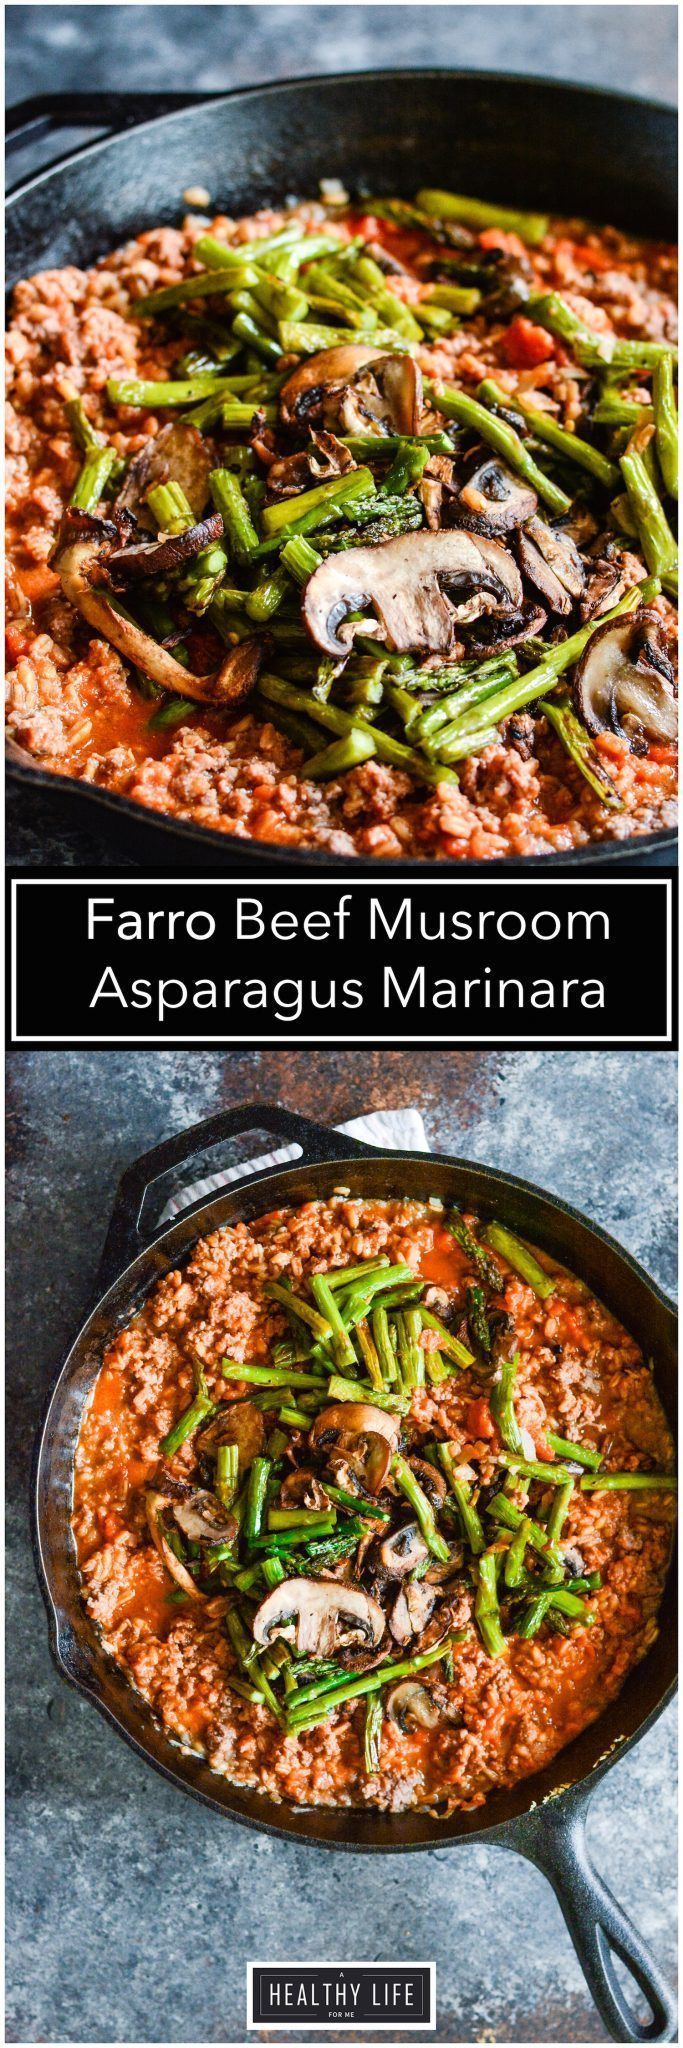 Ground beef, roasted mushrooms, and asparagus mixed in with Farro, an ancient grain all tied together with a marinara sauce. A hearty, delicious and nutritious recipe | Healthy Weeknight Dinner Recipe | Low Calorie Recipes | High Protein Recipes | Macro Recipes